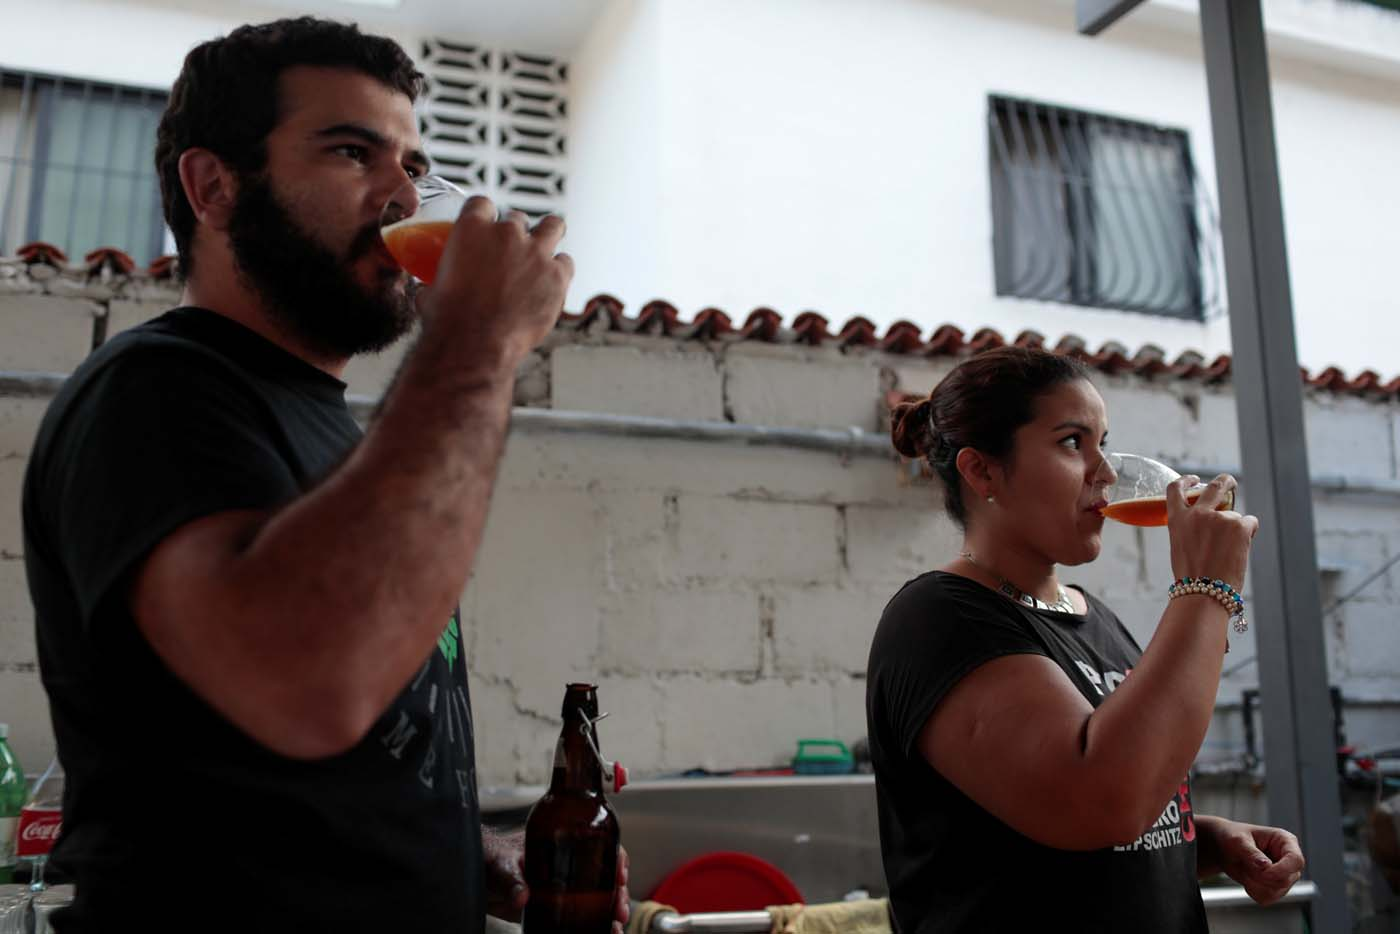 Victor Querales (L), one of the owners of Social Club brewery, and a worker drink craft beer in a beer garden at the garage of his brewery in Caracas, Venezuela September 15, 2017. Picture taken September 15, 2017. REUTERS/Marco Bello